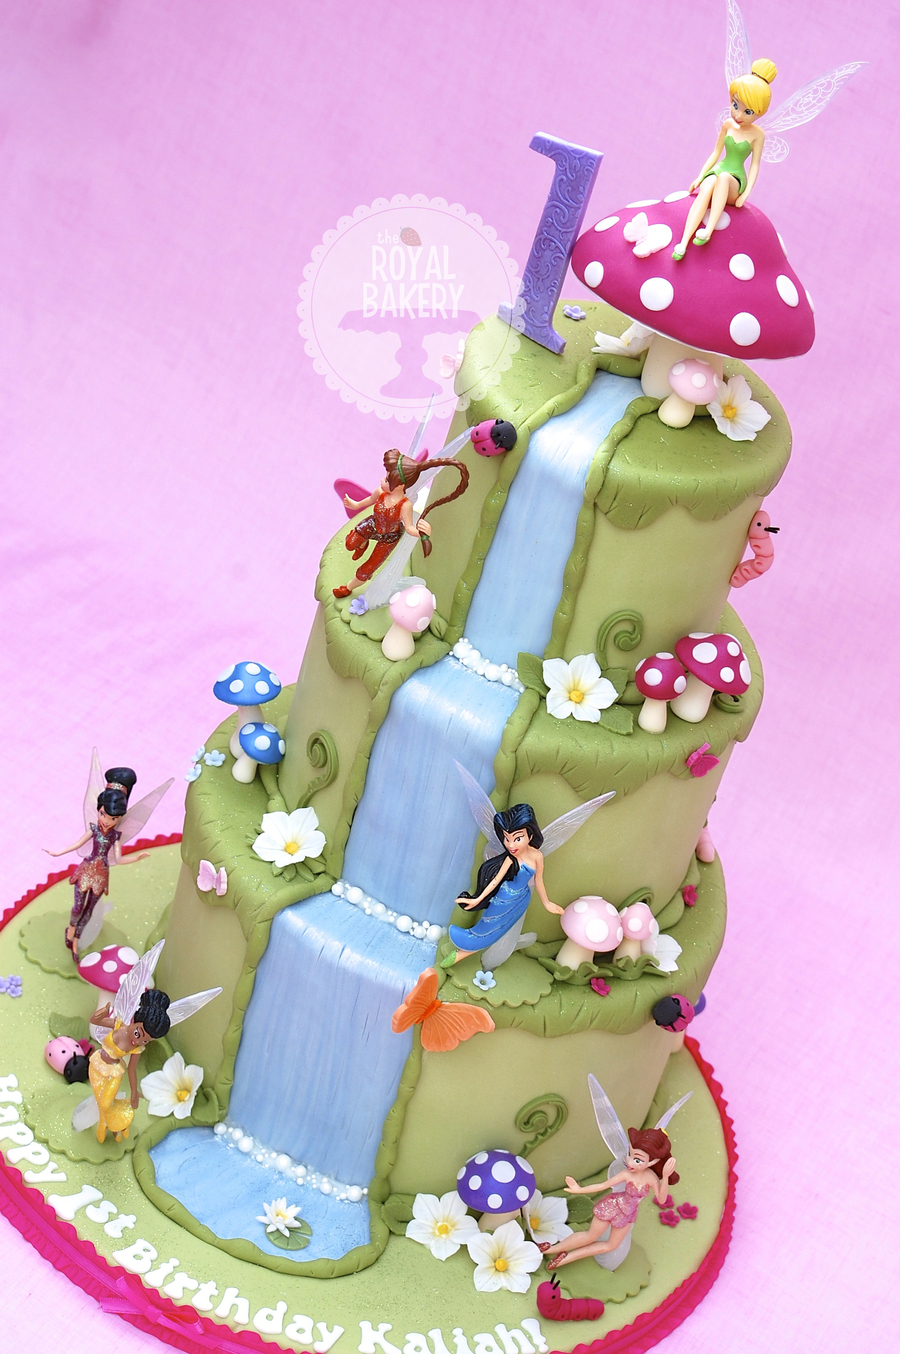 Tinkerbell And Friends on Cake Central